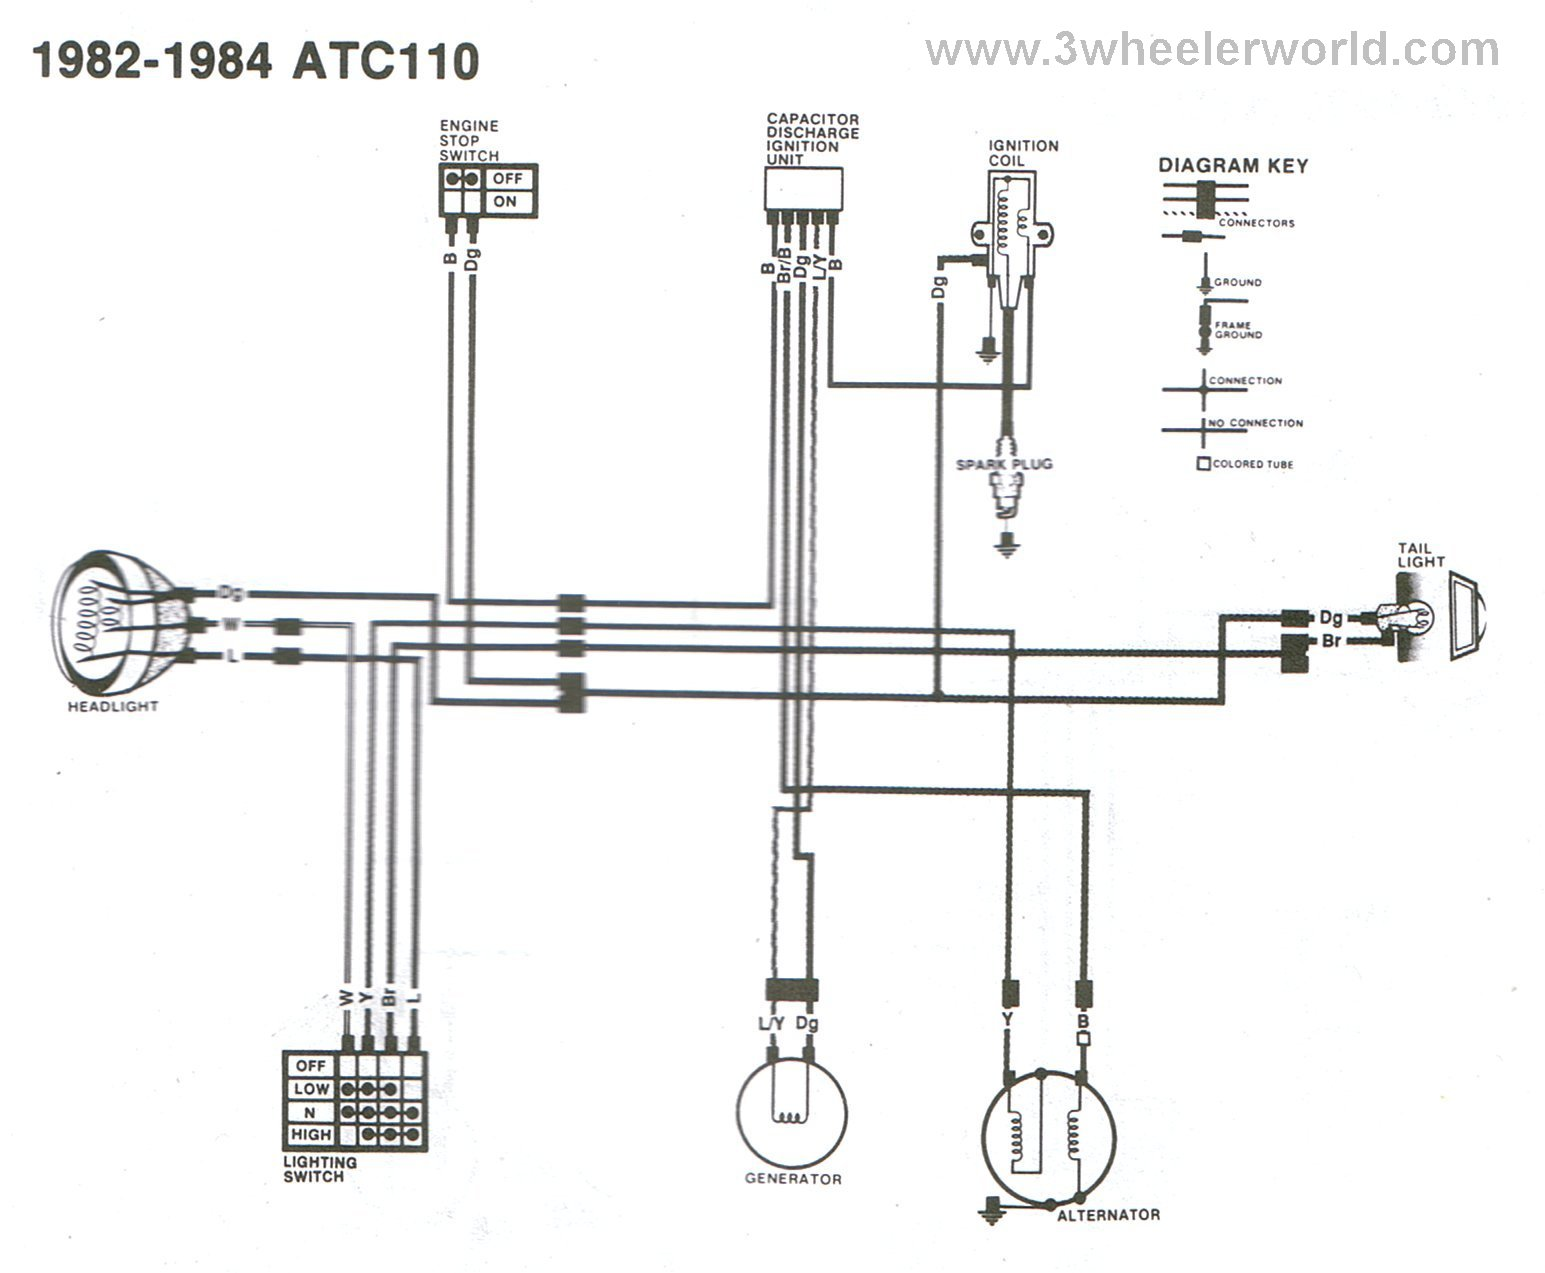 ATC110x82Thru84 3 wheeler world tech help honda wiring diagrams 1970 honda trail 70 wiring diagram at edmiracle.co